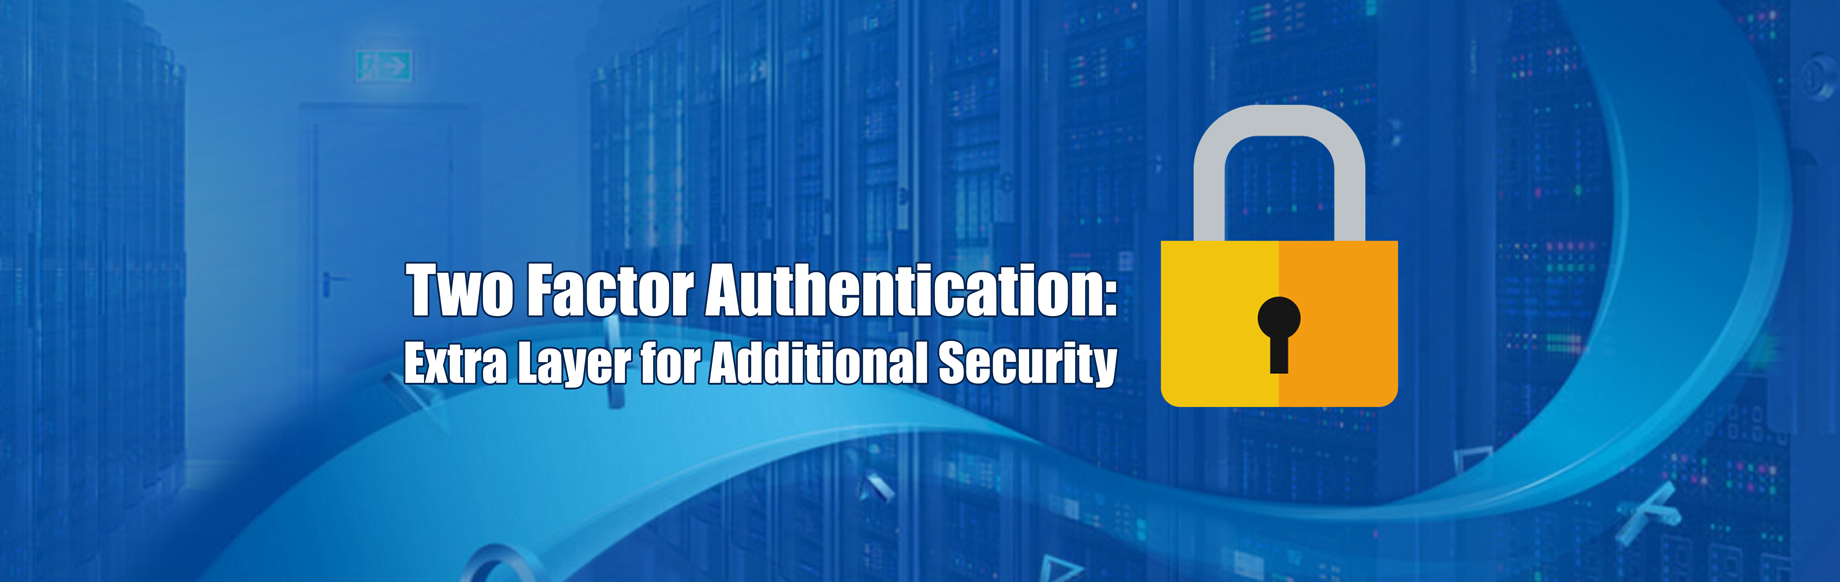 Two Factor Authentication: Extra Layer for Additional Security